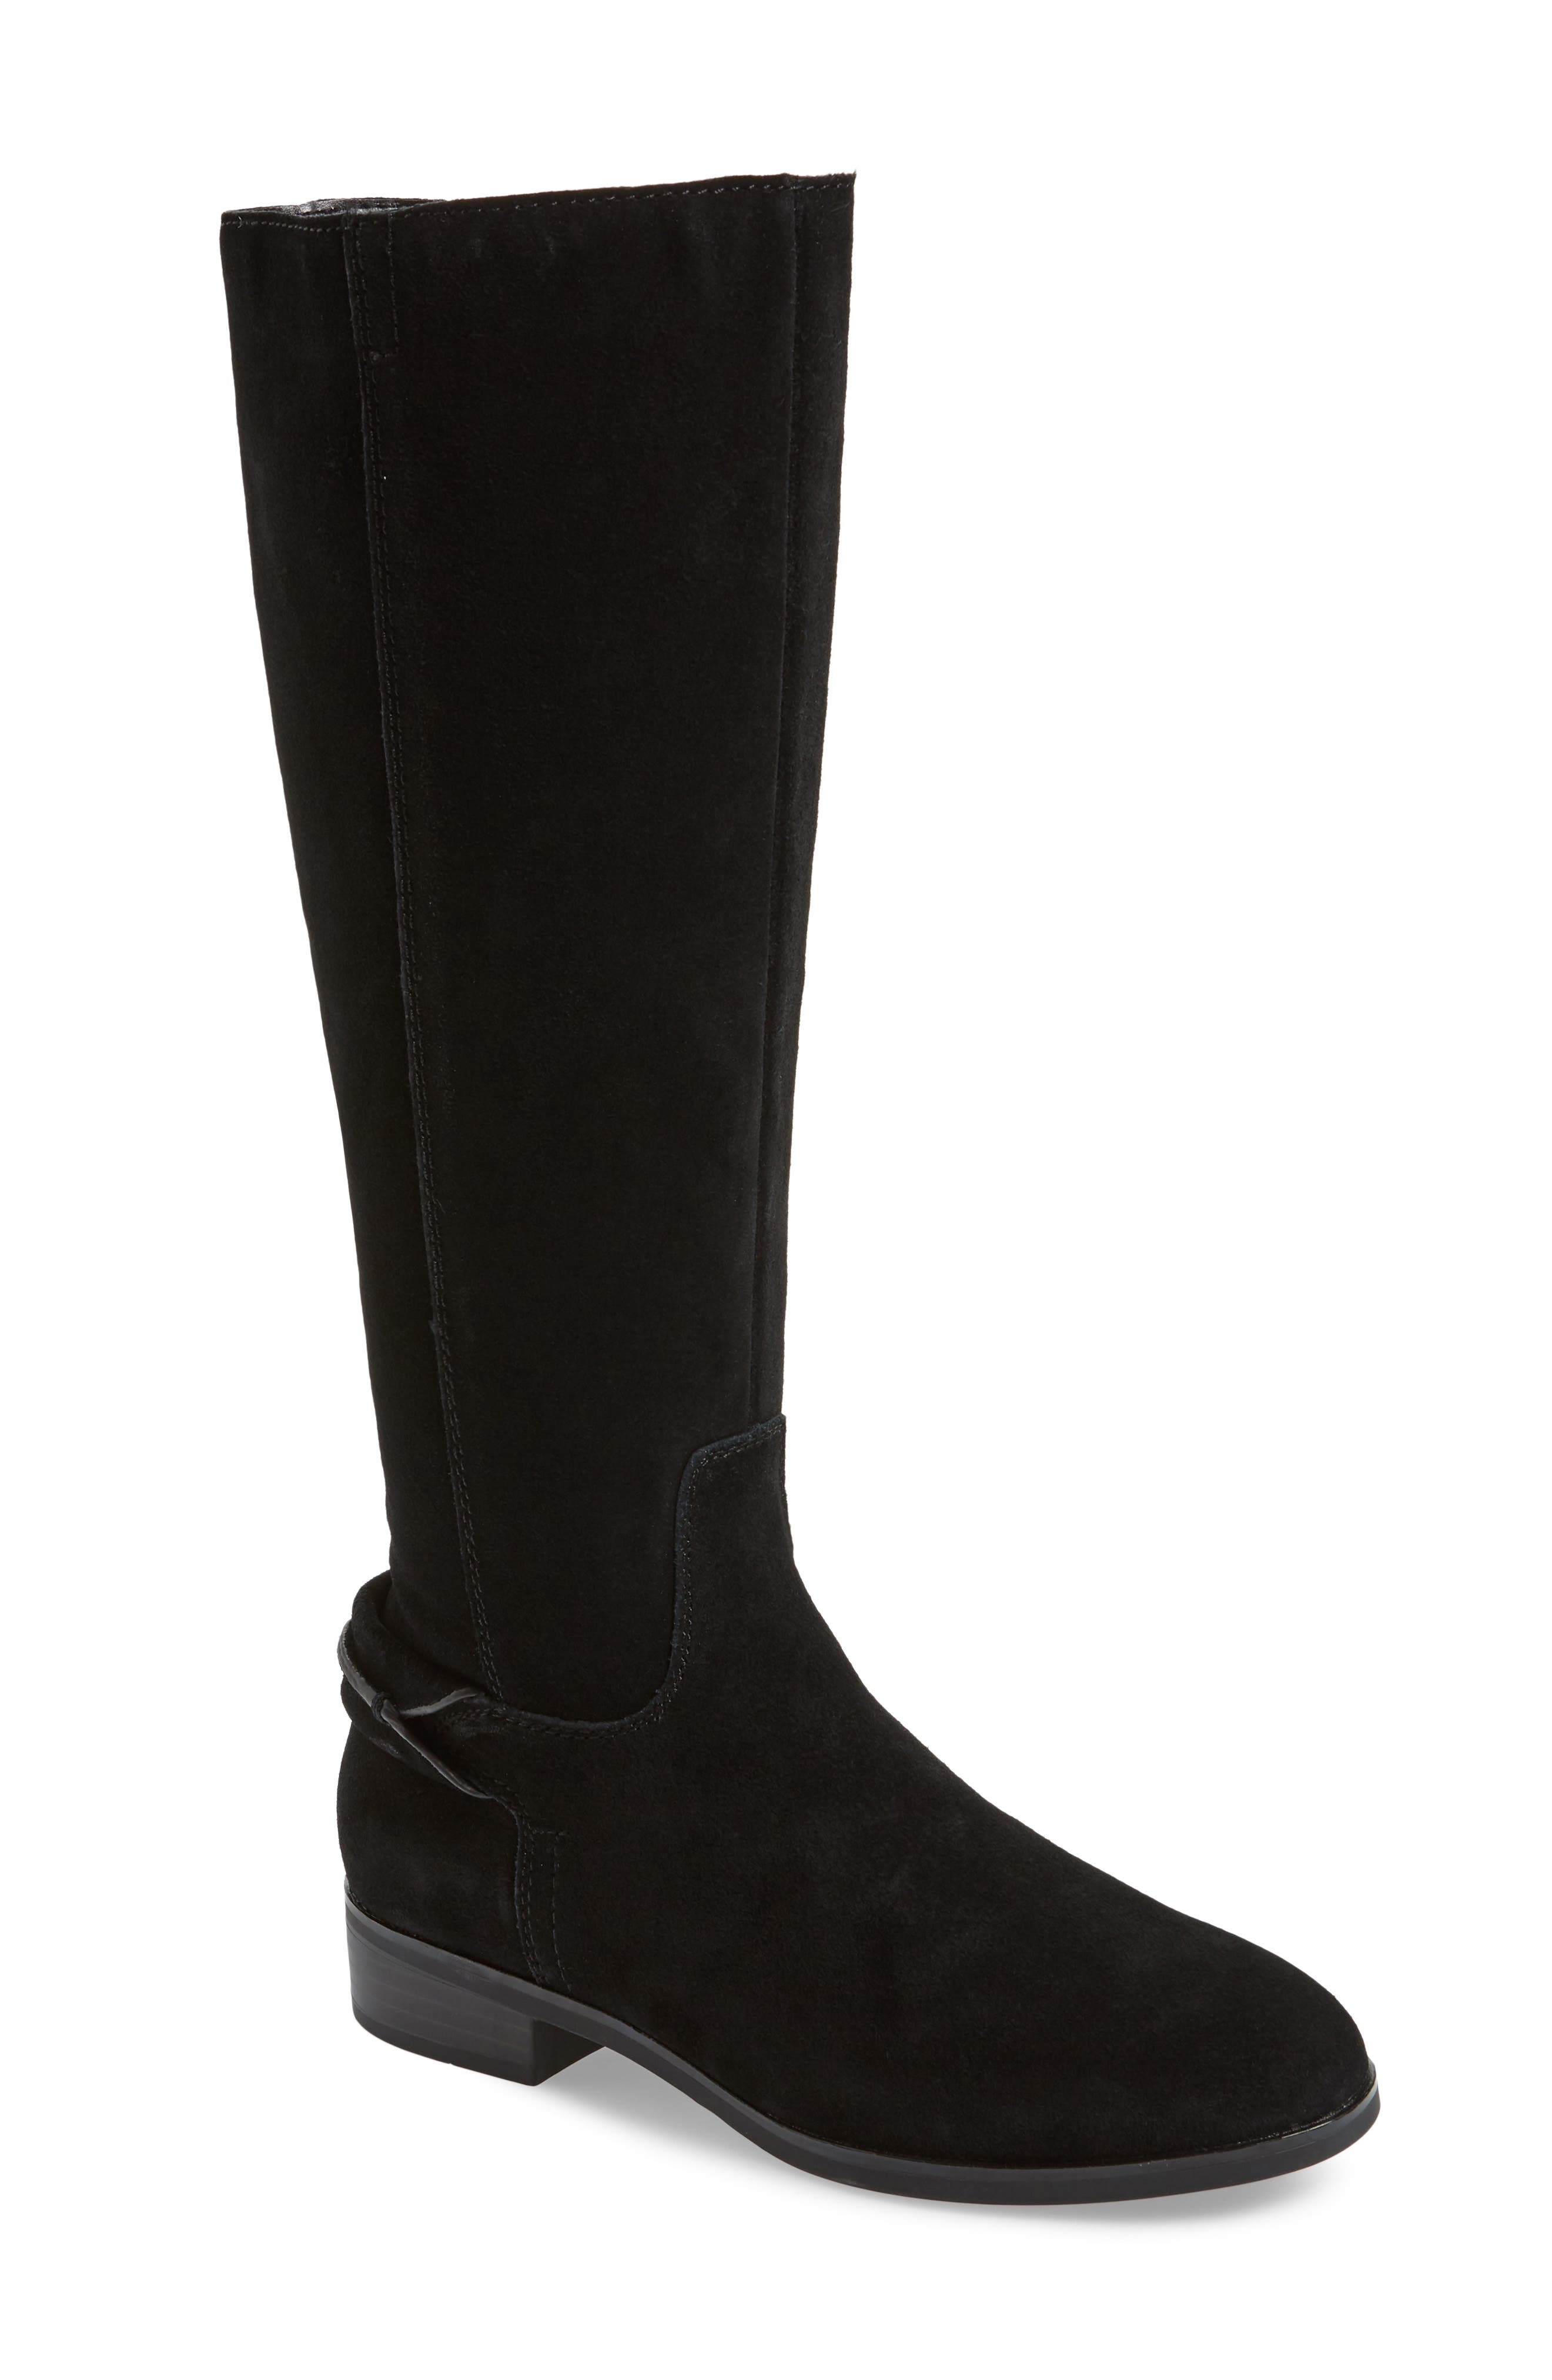 Kensie Cheverly Knee High Boot, Black